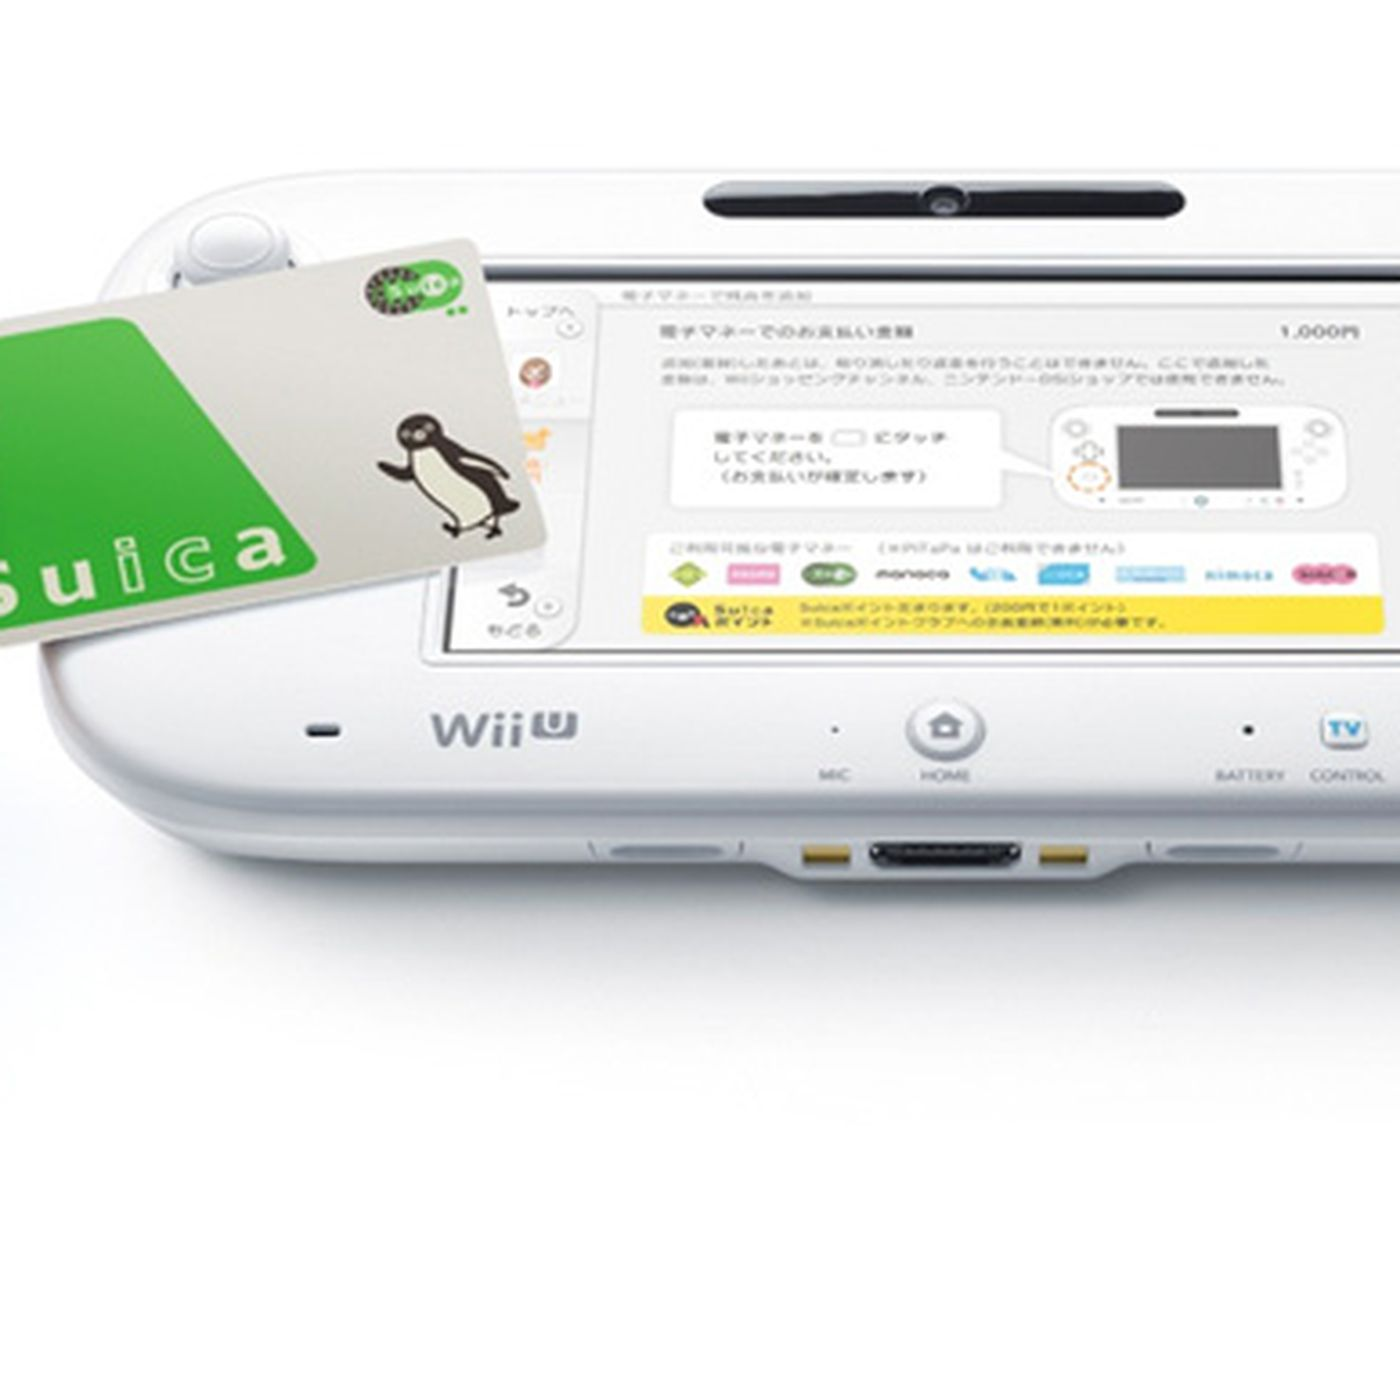 Wii U owners will be able to make eShop payments with an NFC card